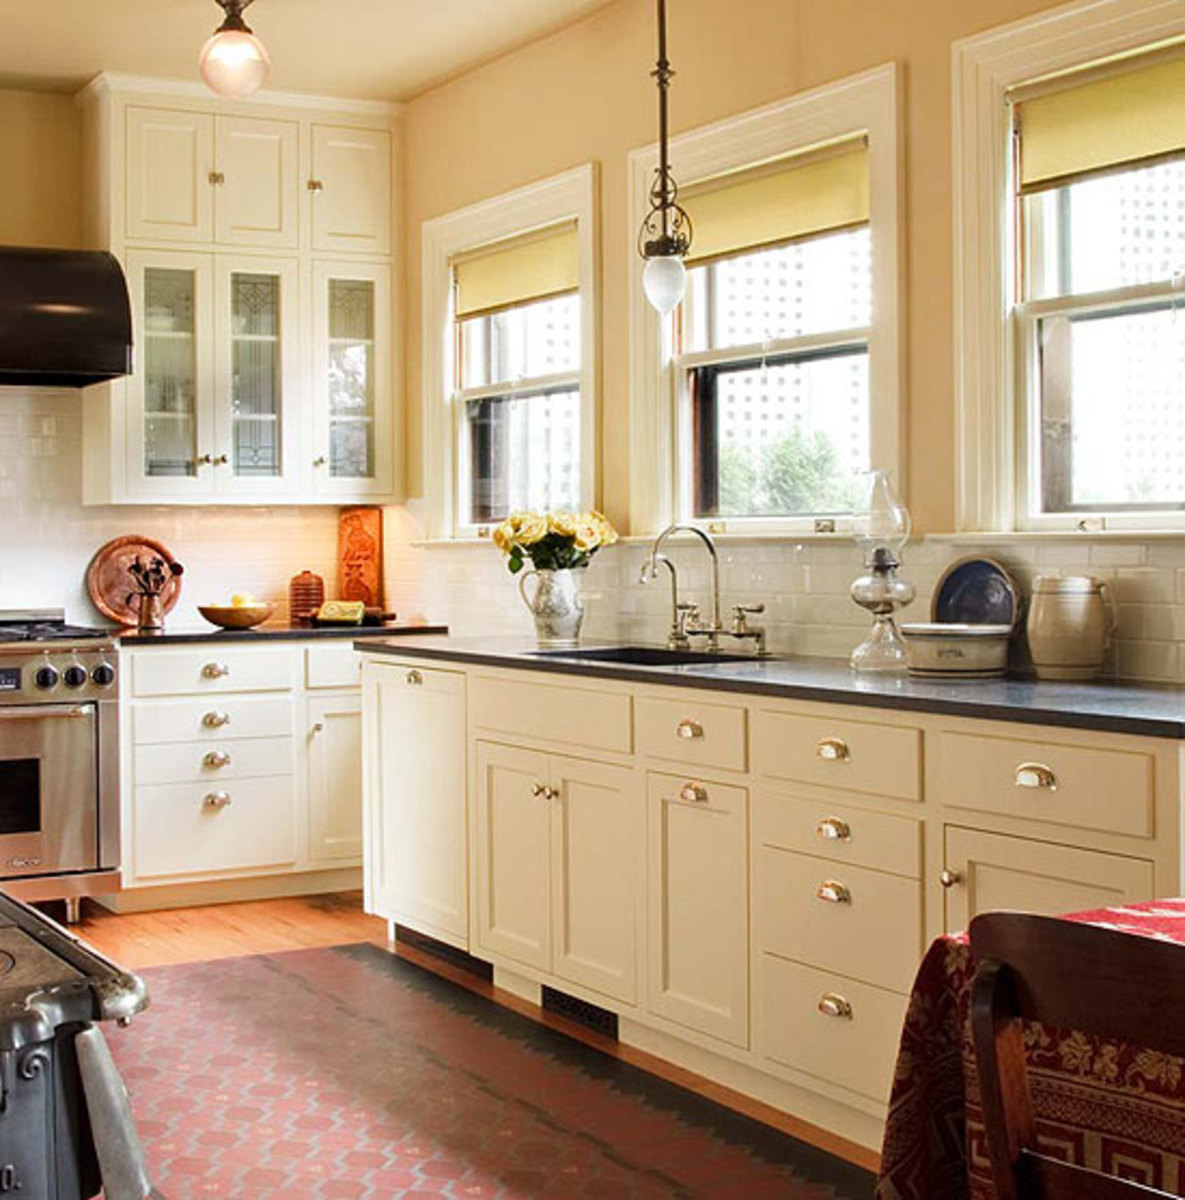 Kitchen Sinks & Countertops: Go Trendy Or Timeless?